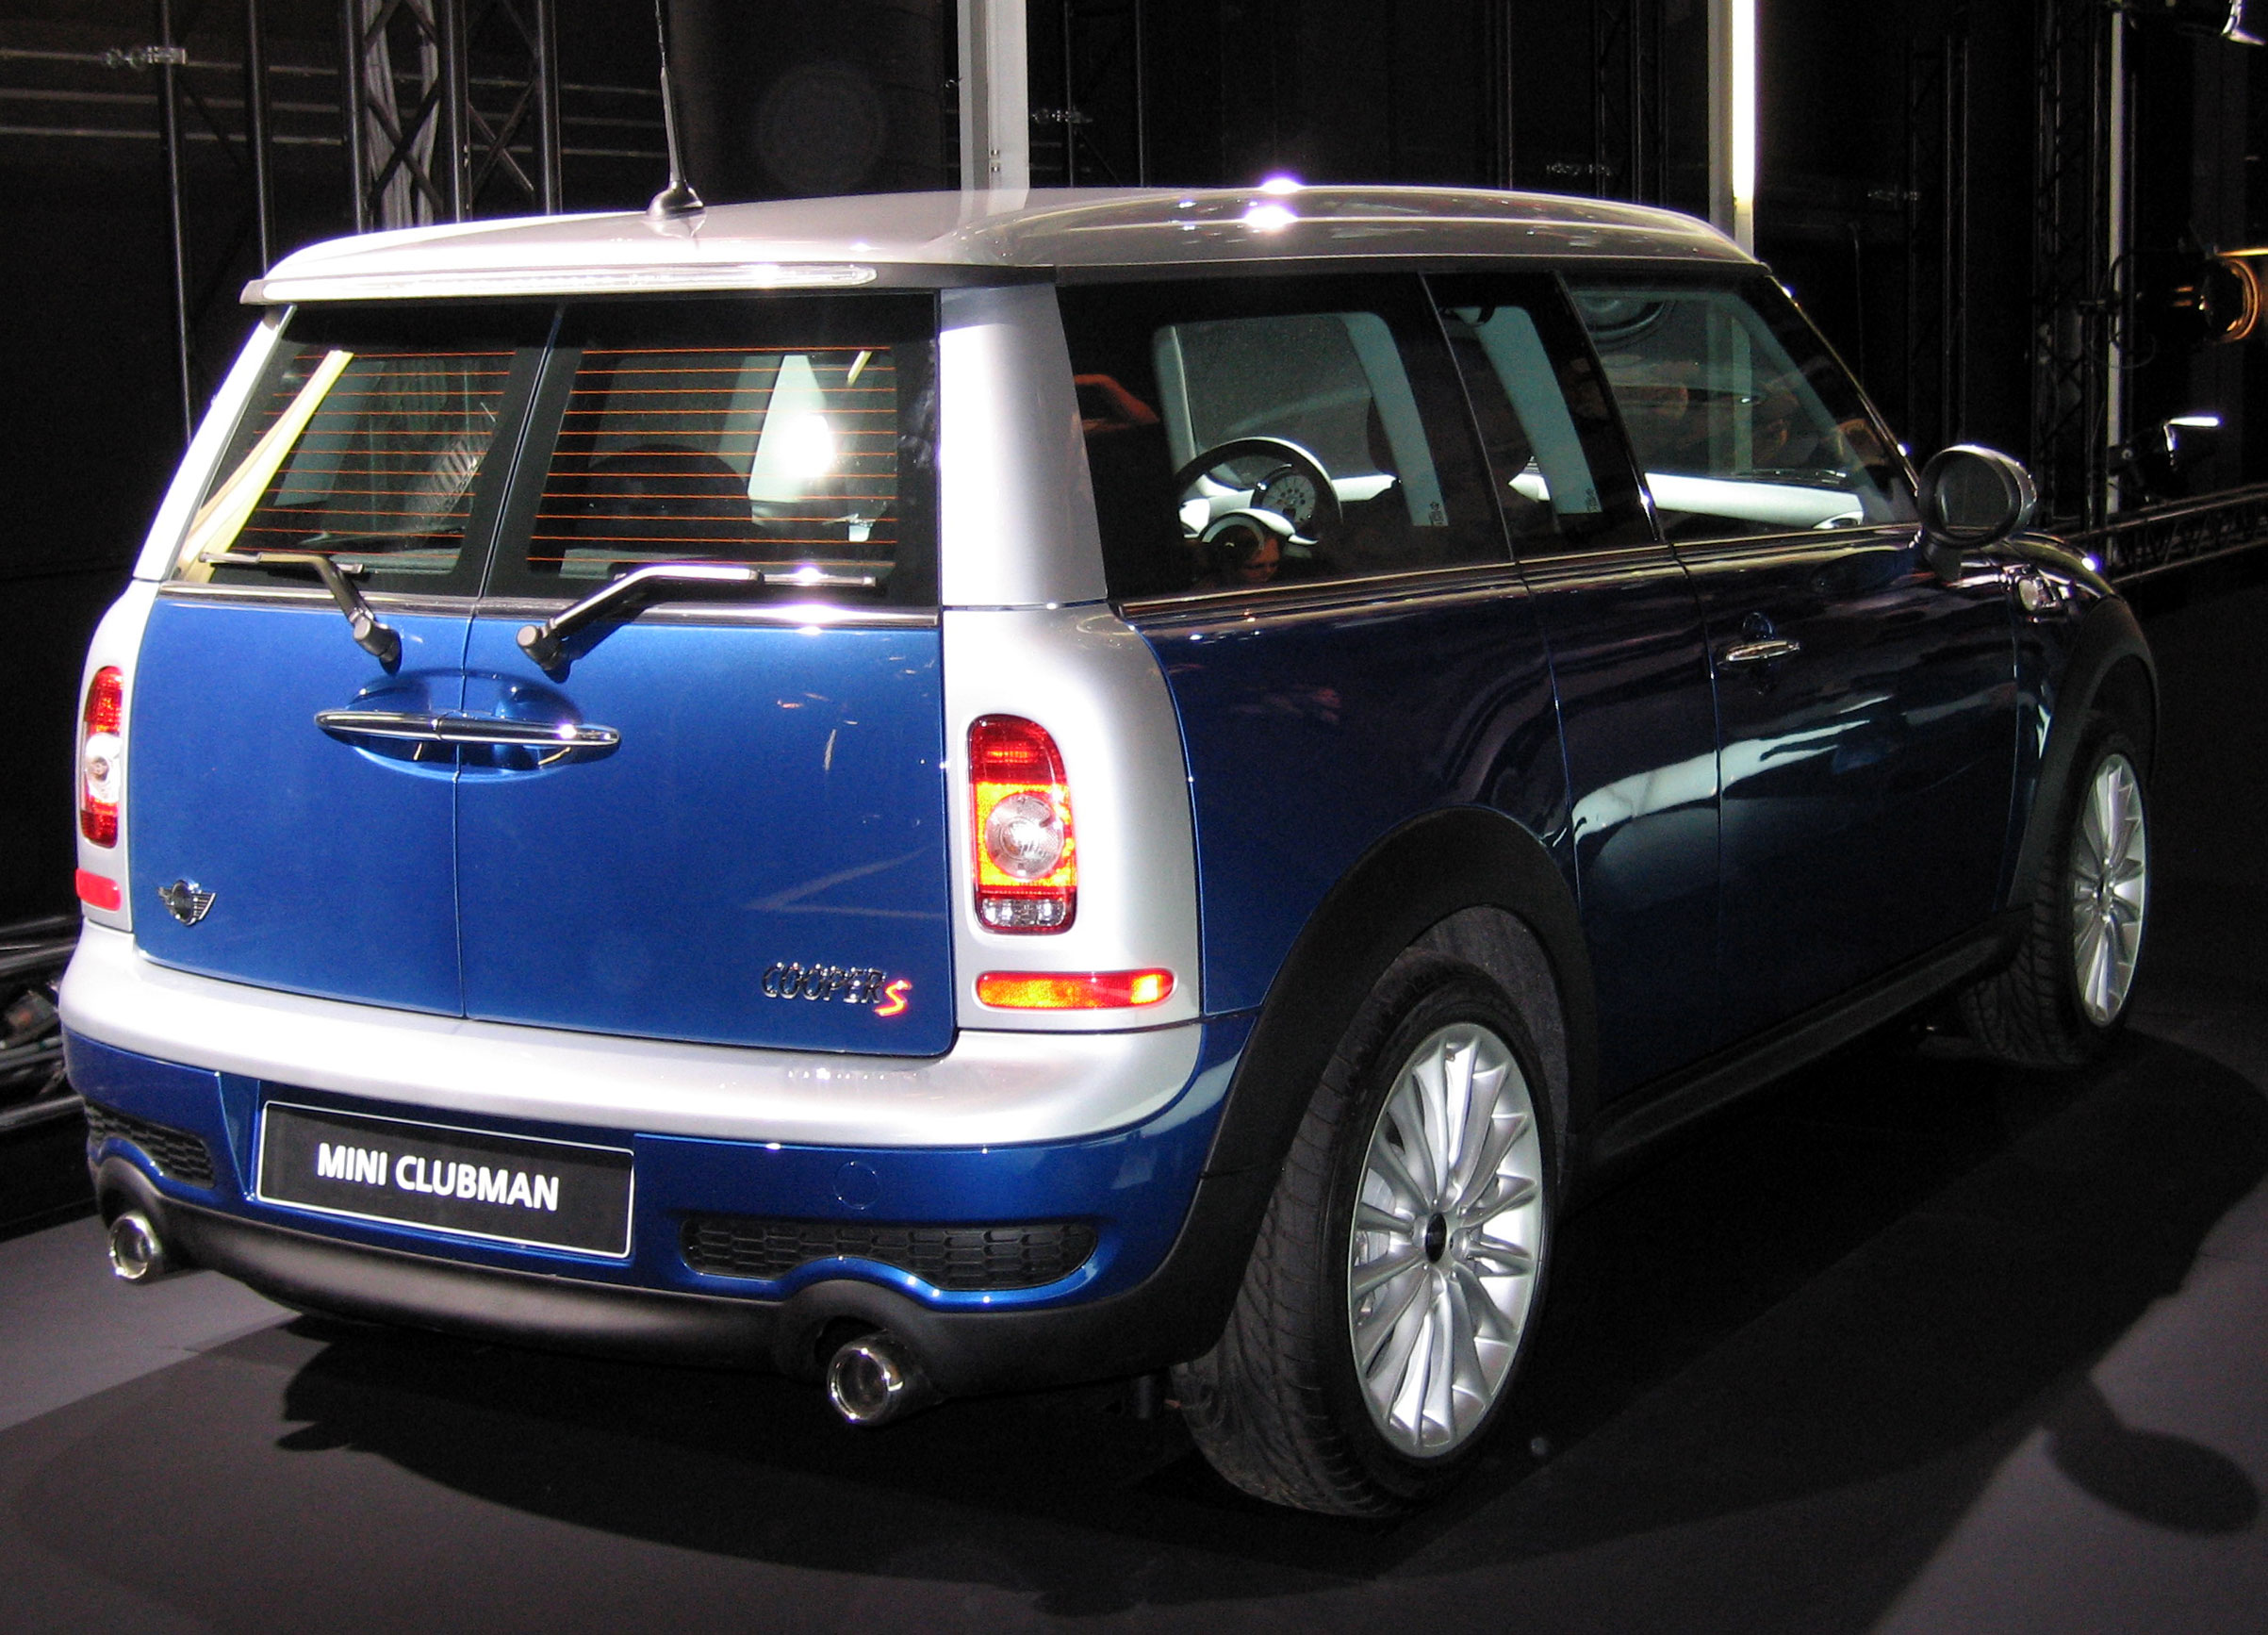 File:BMW Mini Cooper S Clubman.jpg - Wikimedia Commons